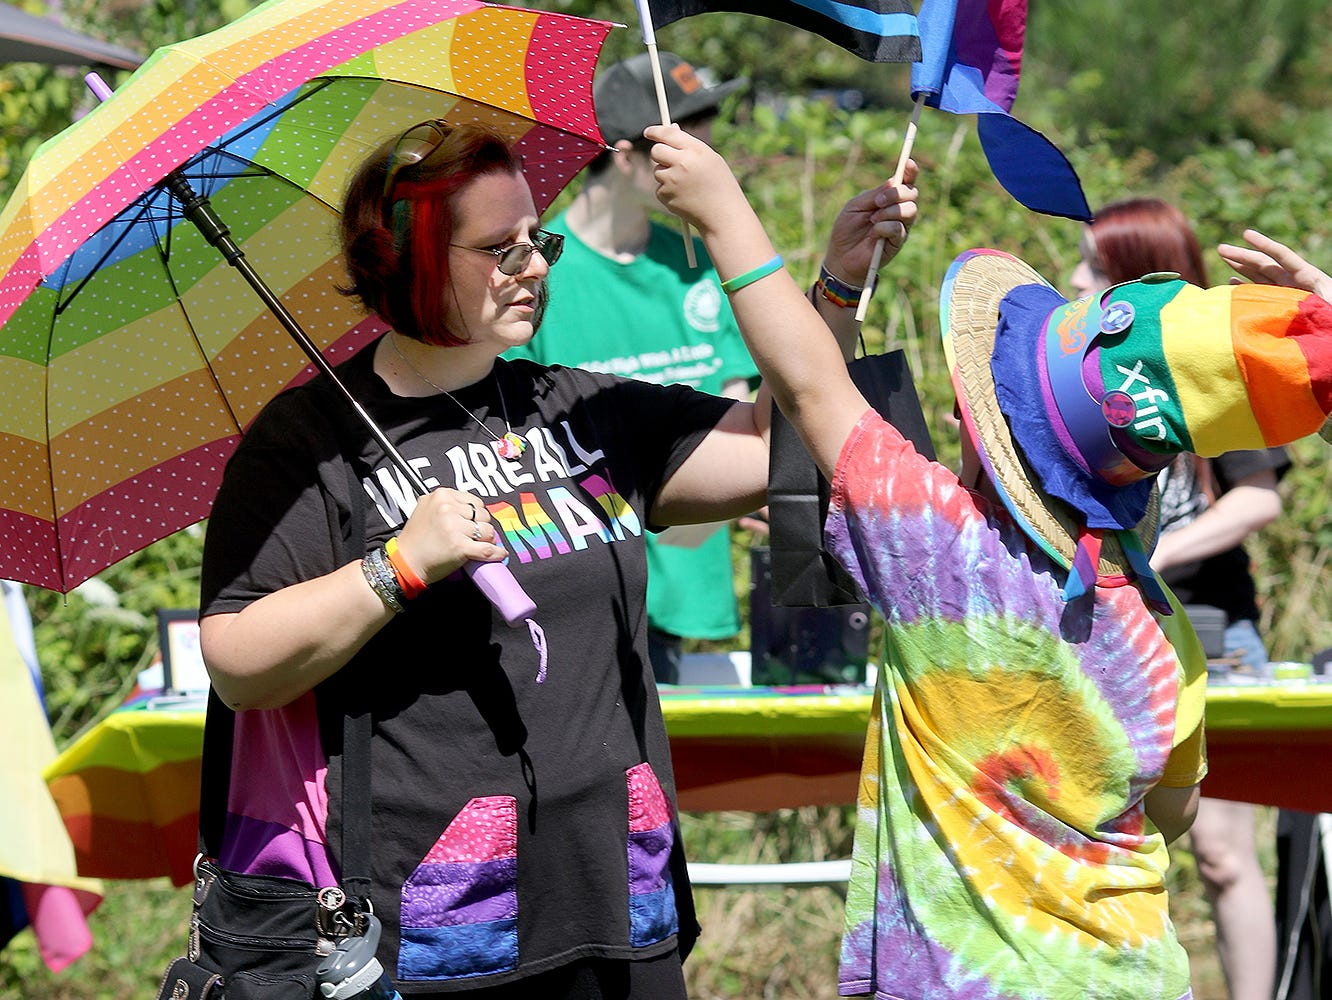 Dani Gainer and her son Jasper, 9, of Bremerton, wave their pride flags during the Kitsap Pride Festival on Saturday July, 21, 2018 at Evergreen-Rotary Park in Bremerton.